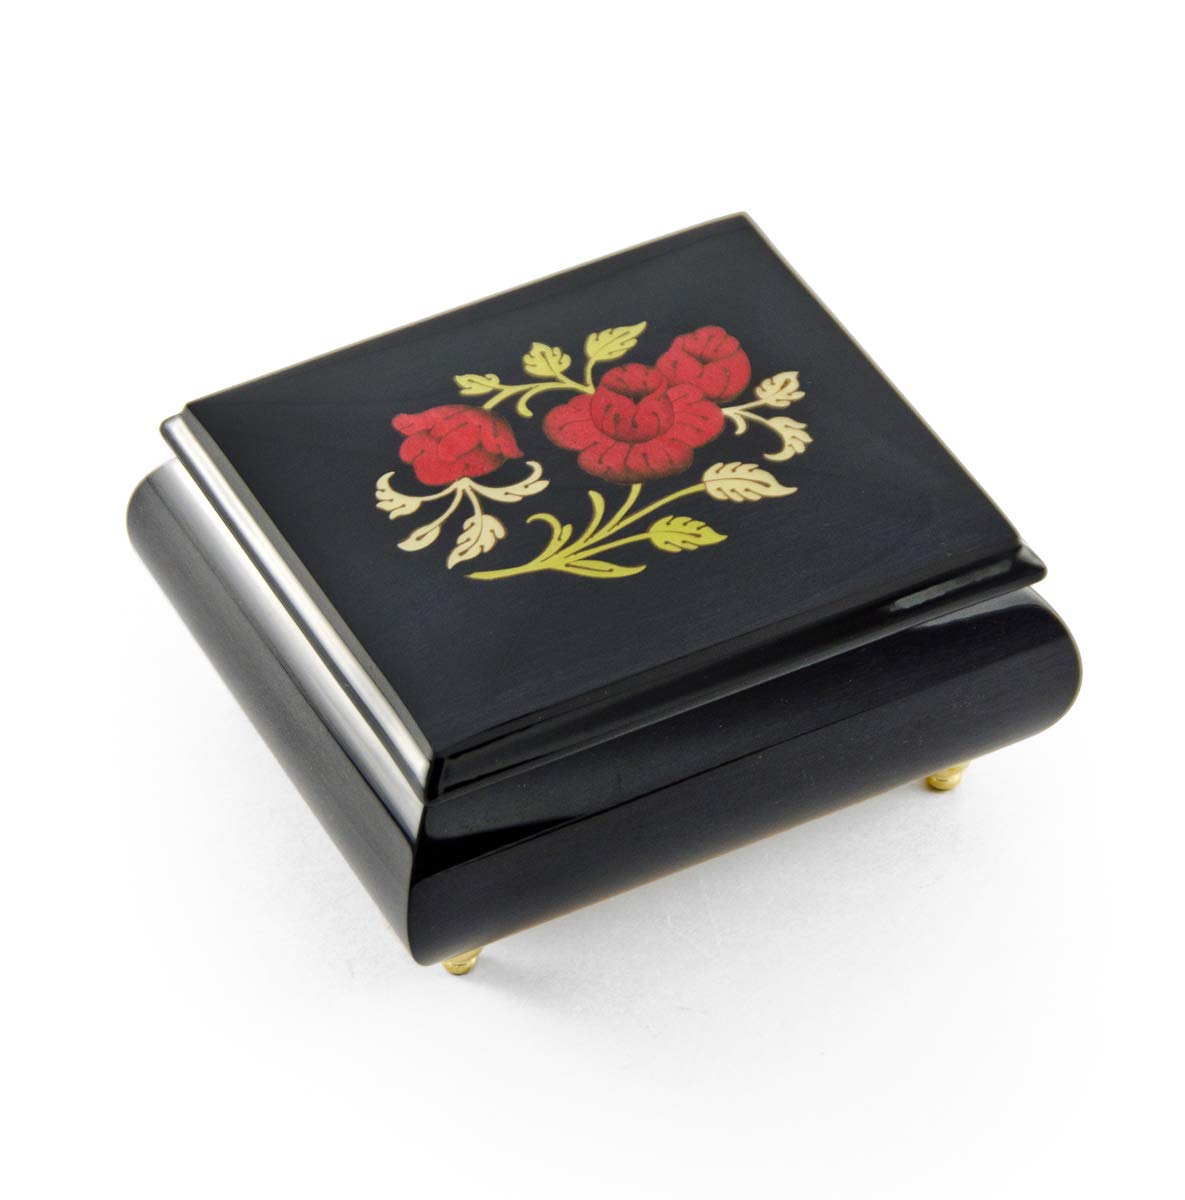 Enchanting Midnight Black with Red Rose Wood Glossy Sorrento Inlaid Music Box - Over 400 Song Choices - You are My Sunshine